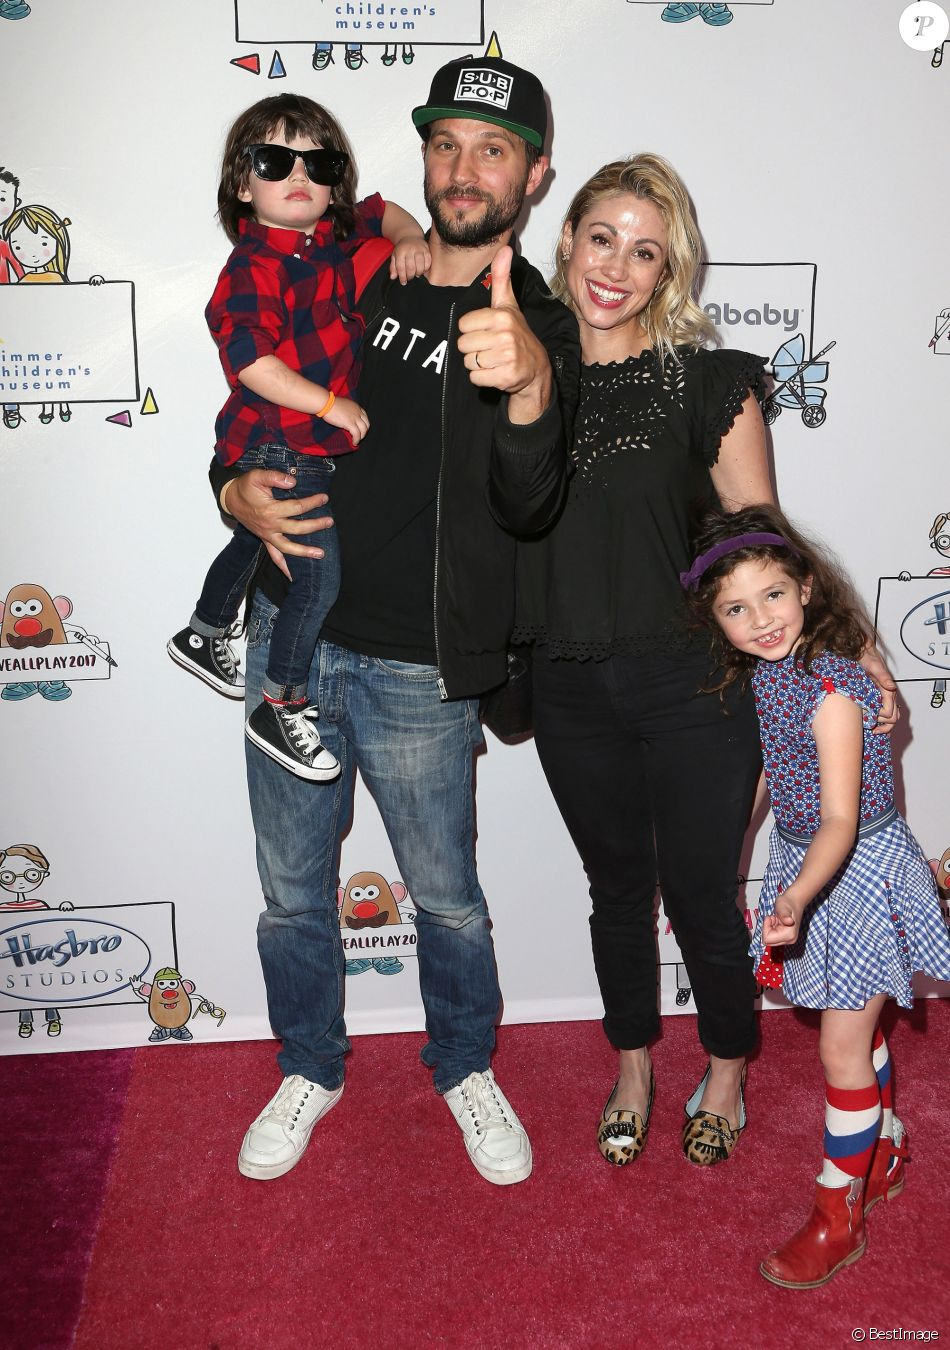 Logan Marshall-Green, sa femme Diane Marshall-Green et leurs enfants Tennessee et Culla Mae à Los Angeles, le 30 avril 2017 © AdMedia via Zuma/Bestimage